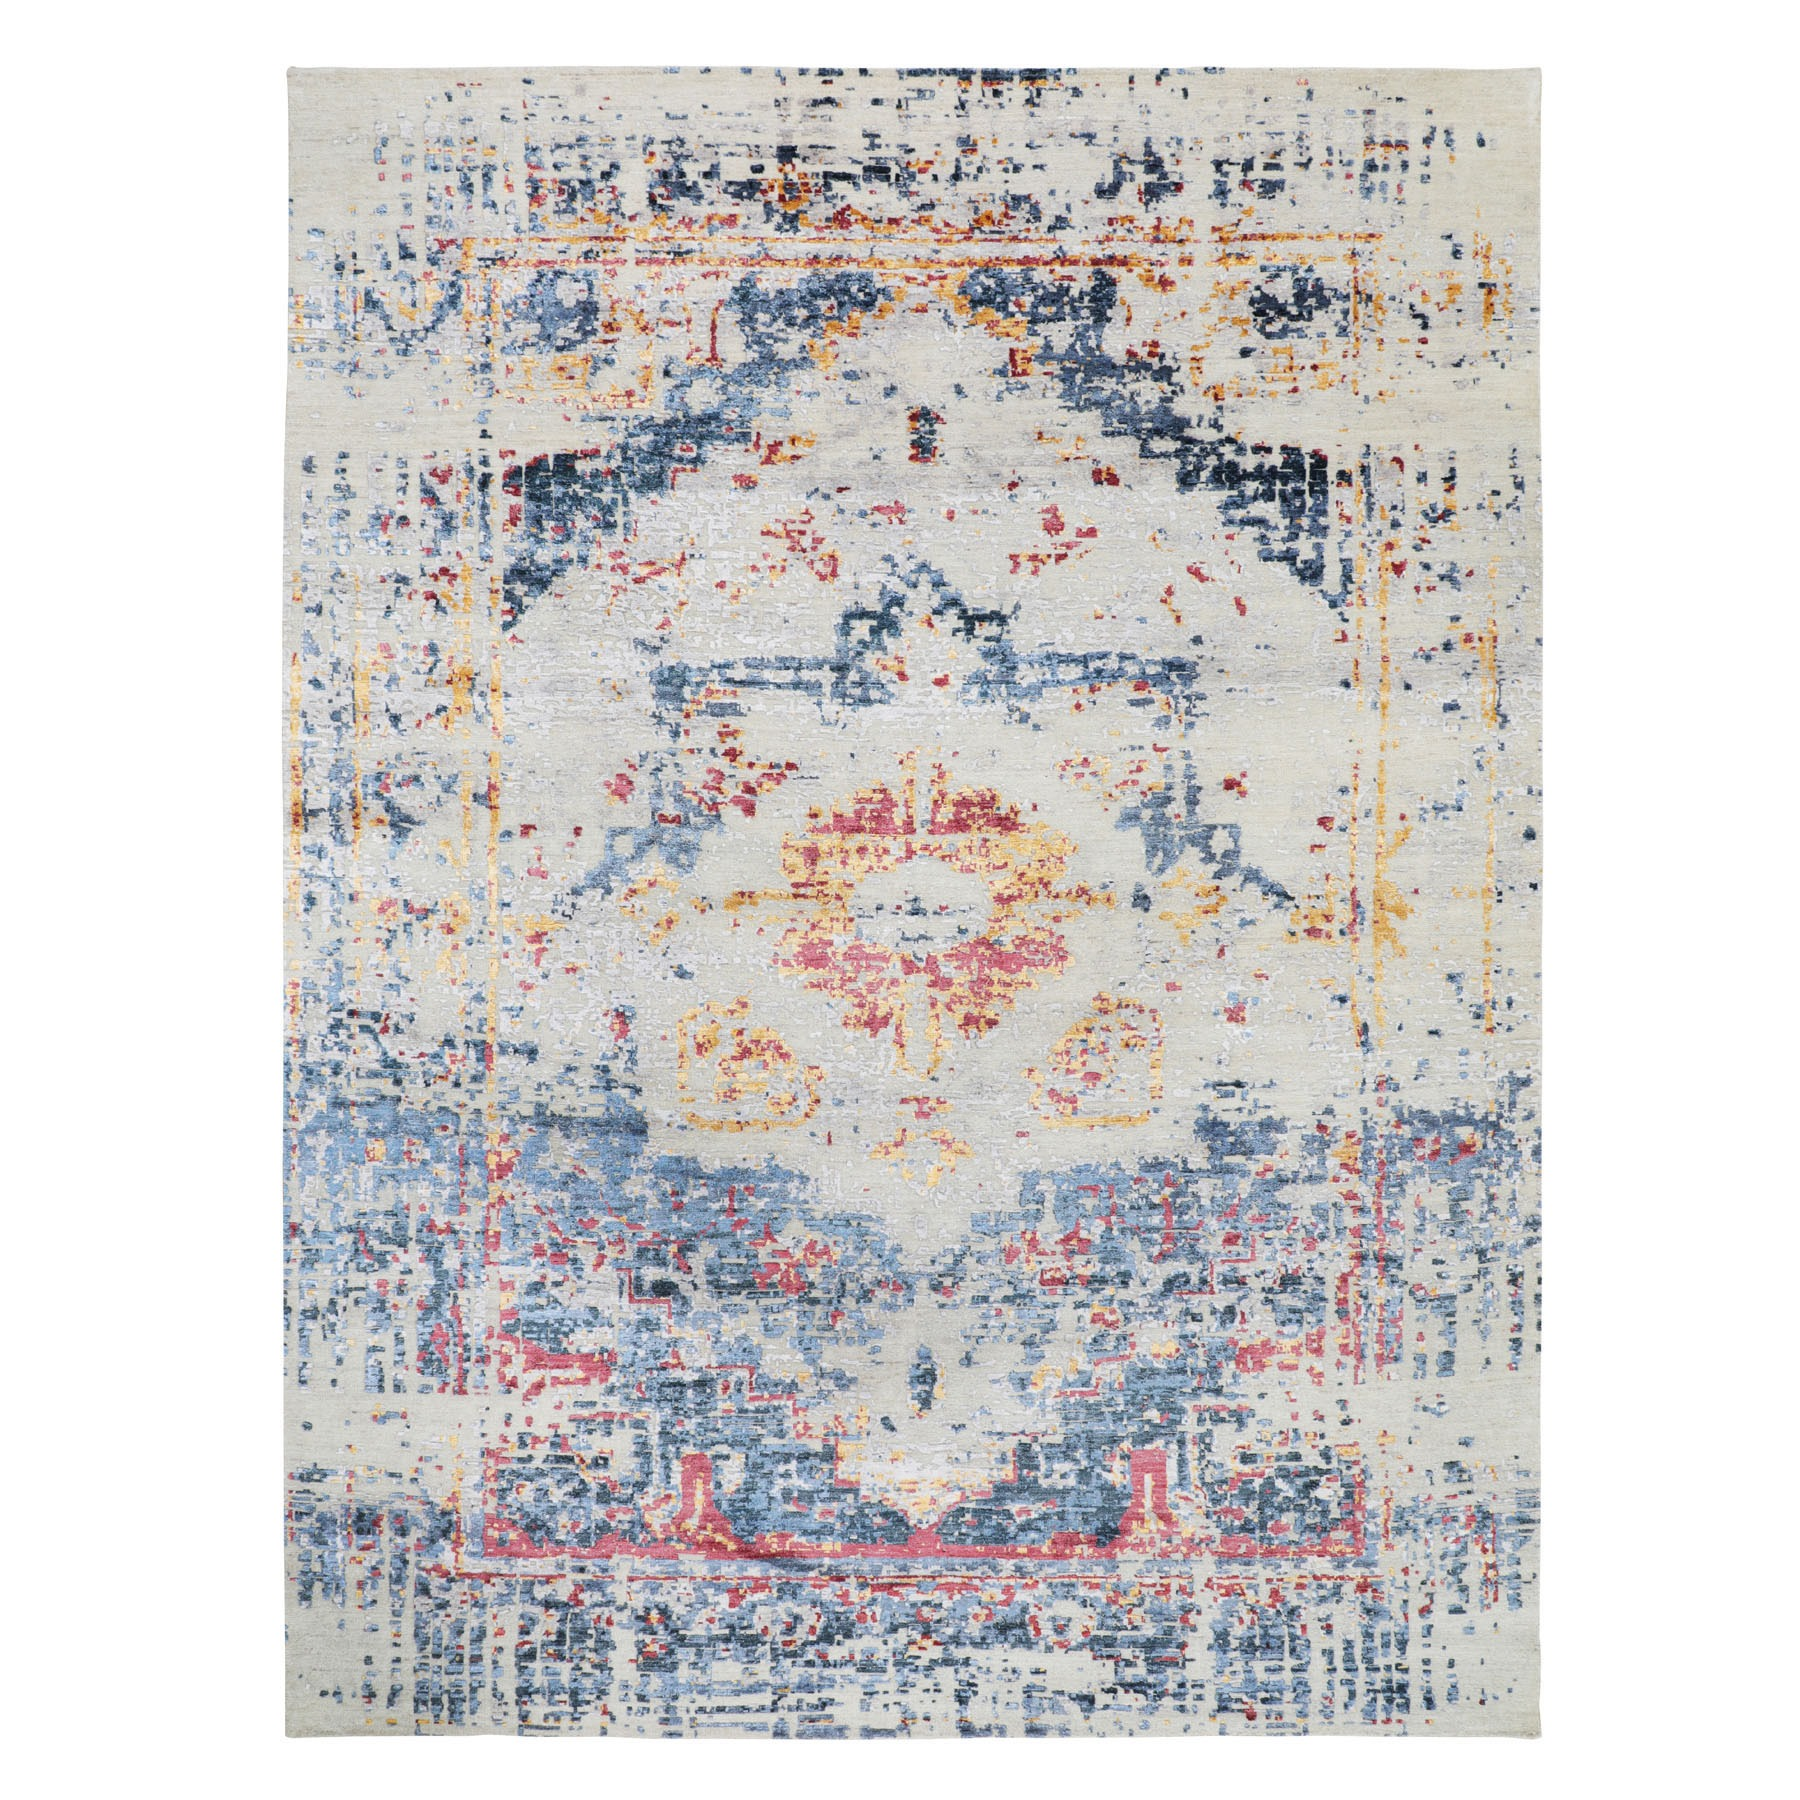 8'x10' Colorful Erased Heriz Design Silk with Textured Wool Hand Woven Oriental Rug